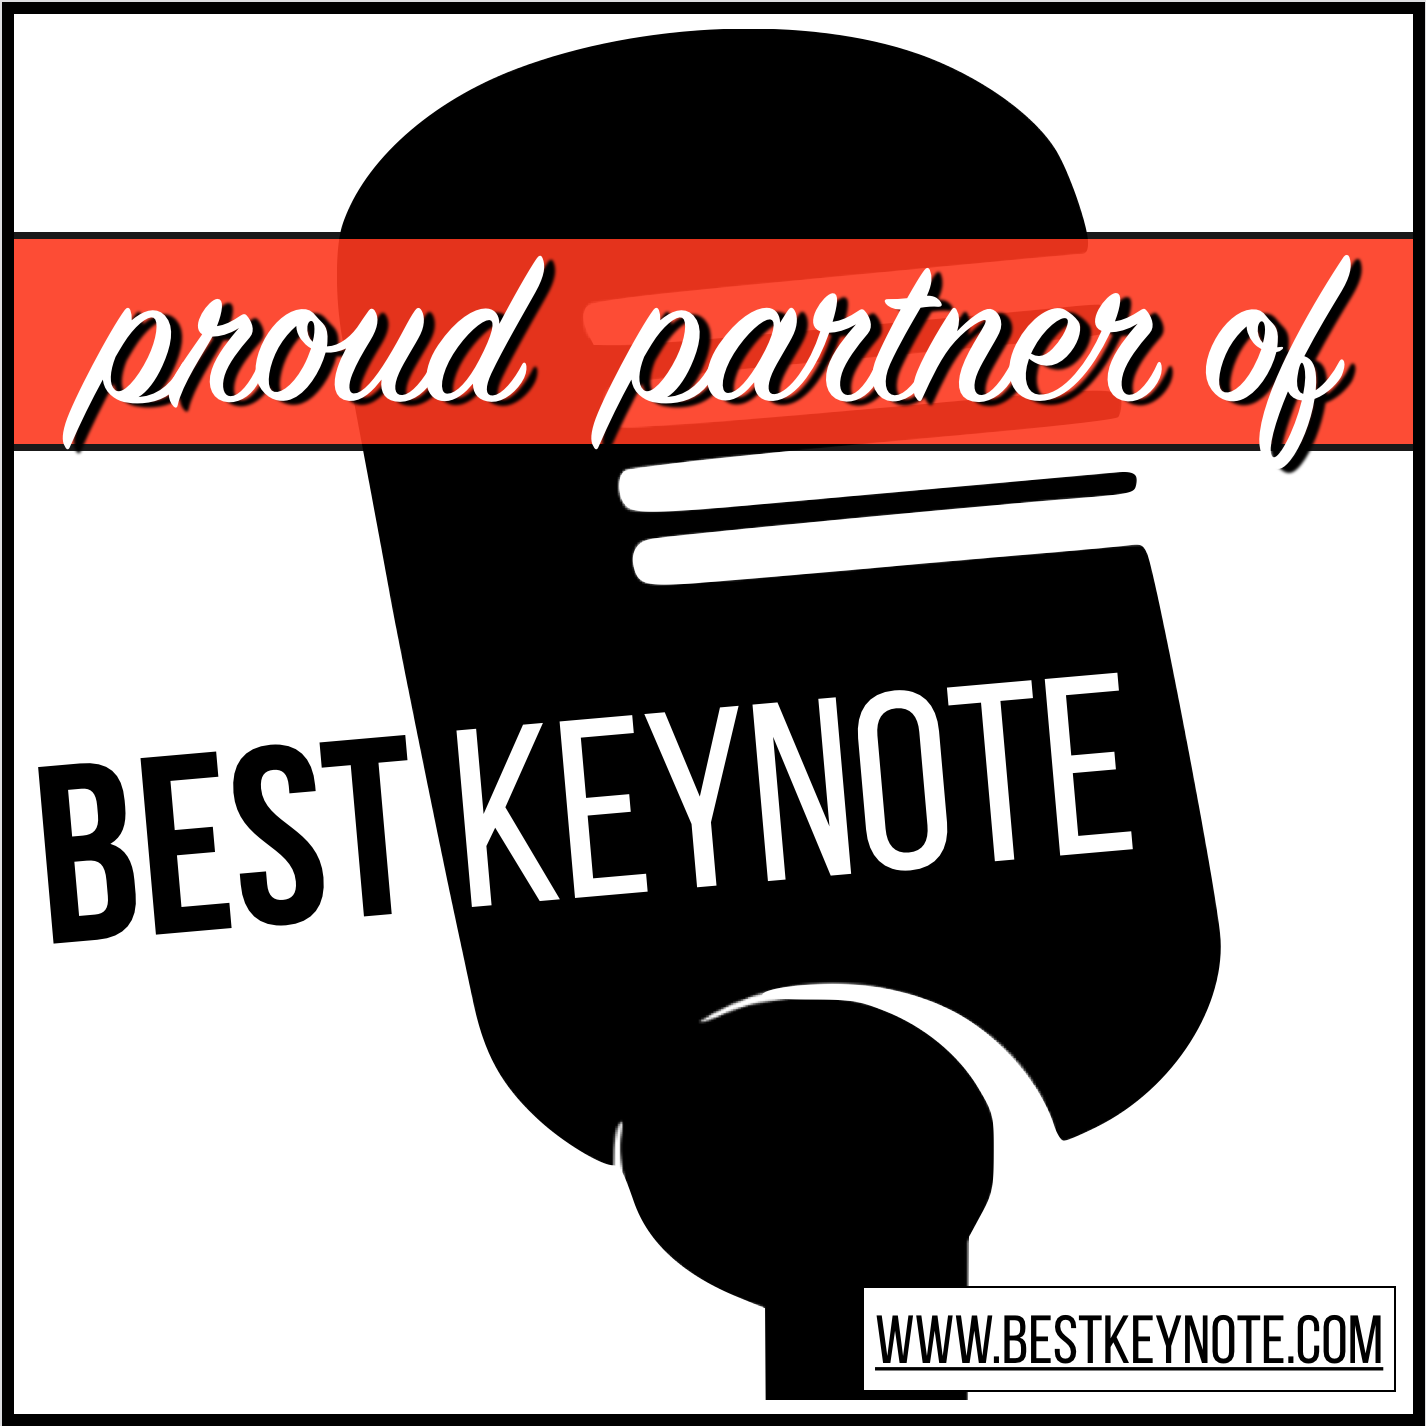 Proud Partner of Best Keynote